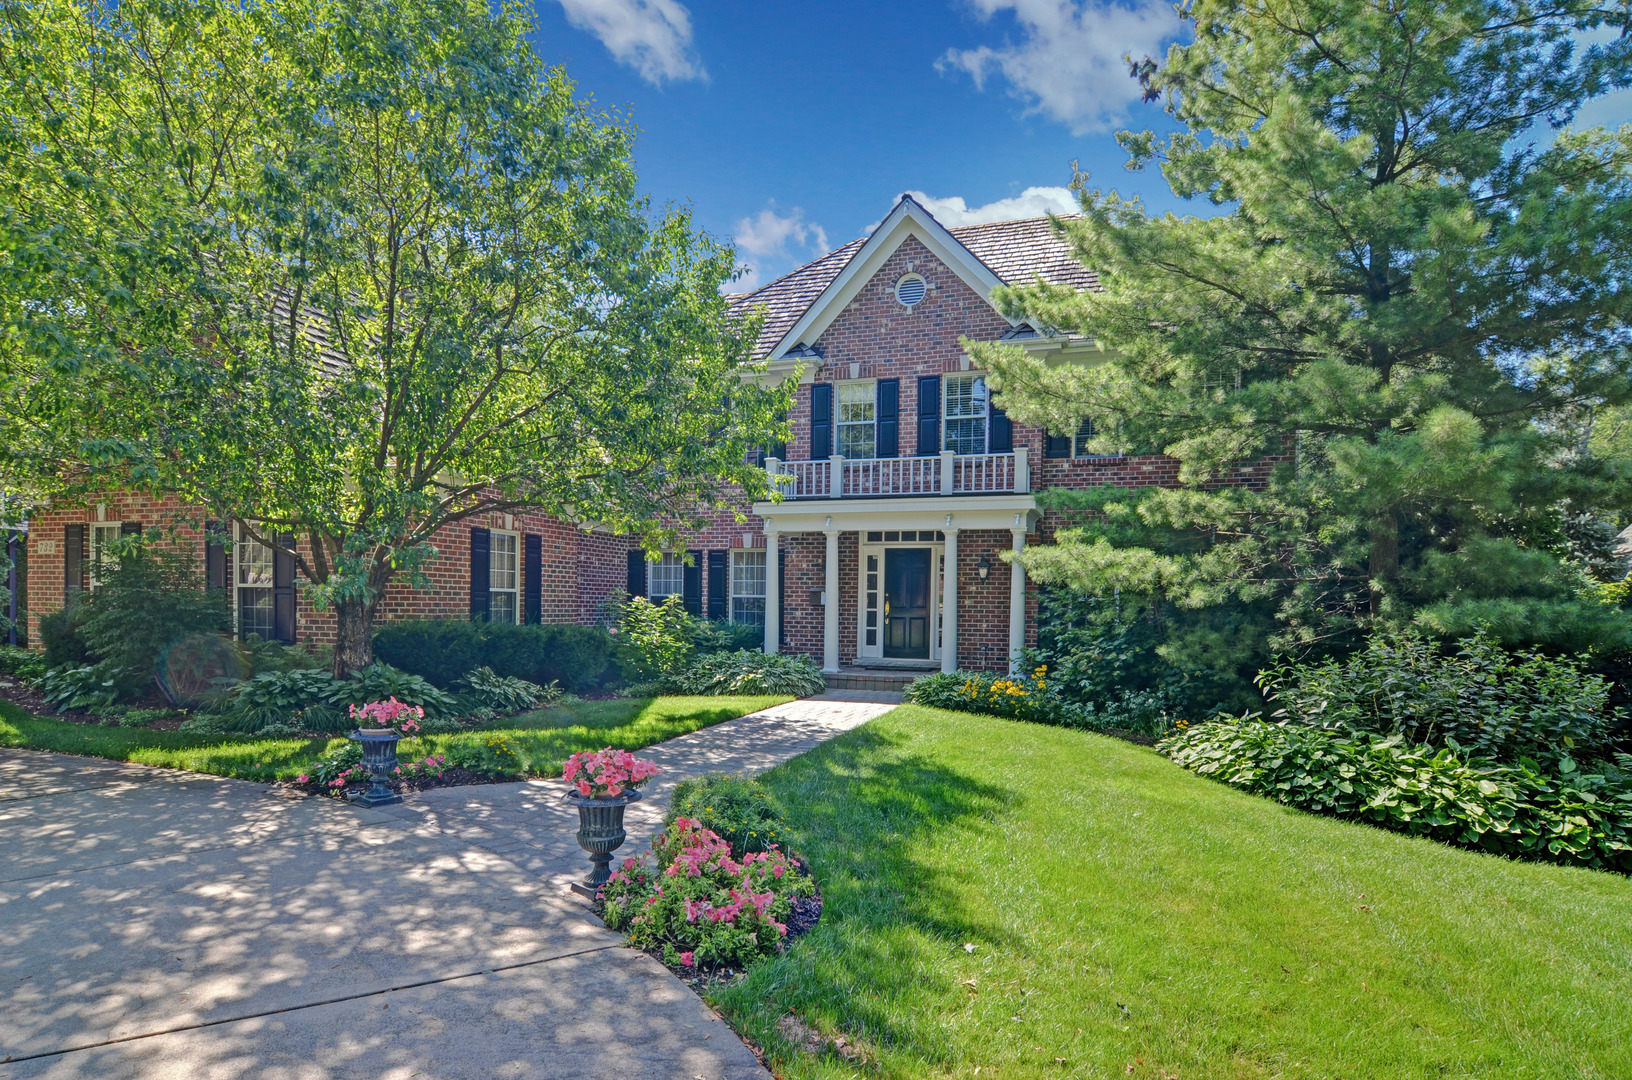 732 West North Street, Hinsdale, IL - USA (photo 1)